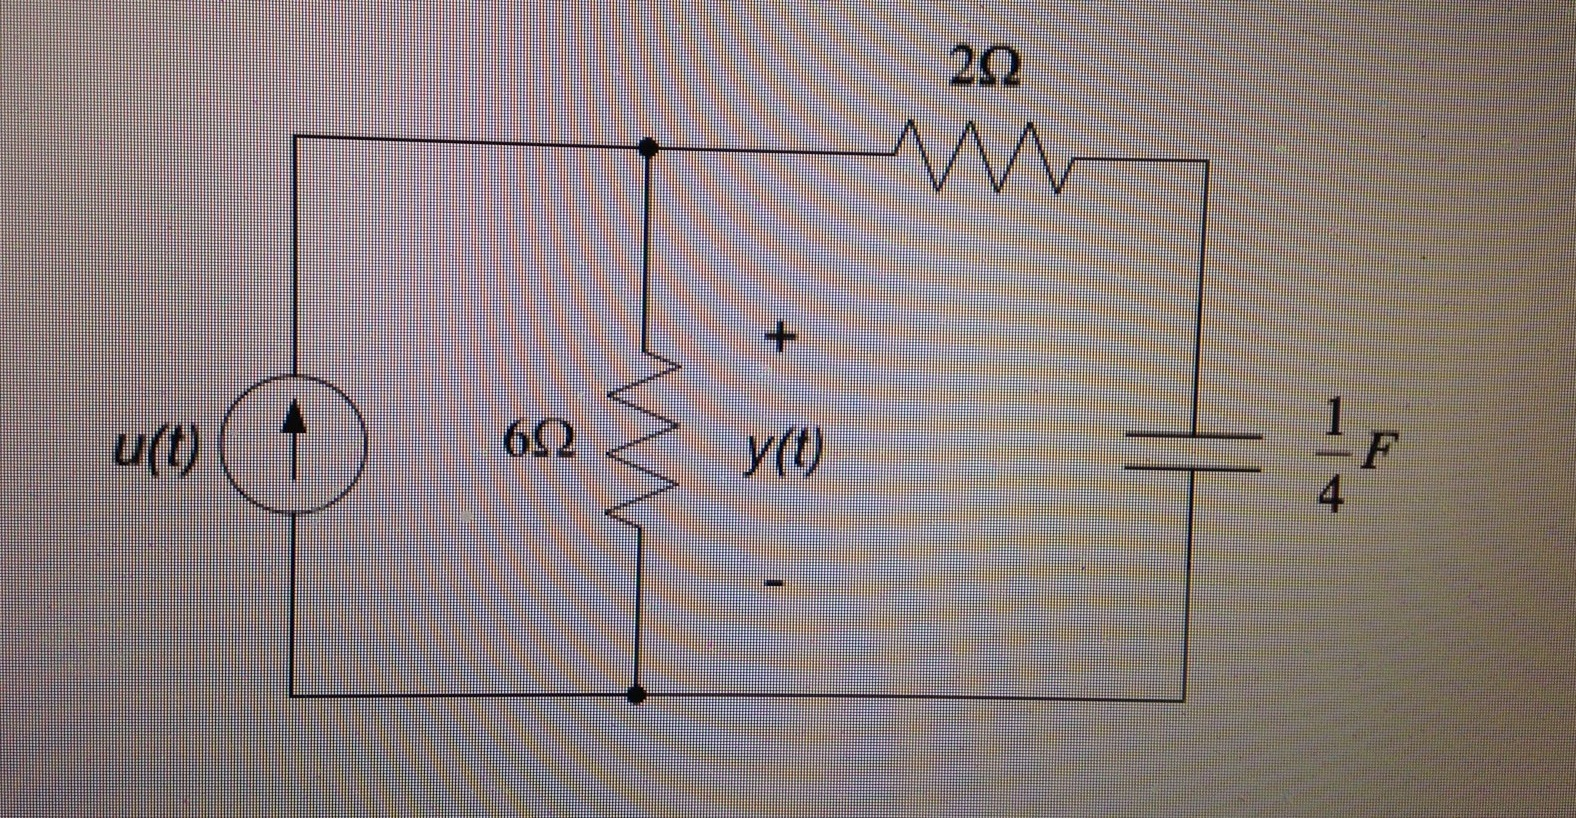 For the circuit shown, the input is the current s